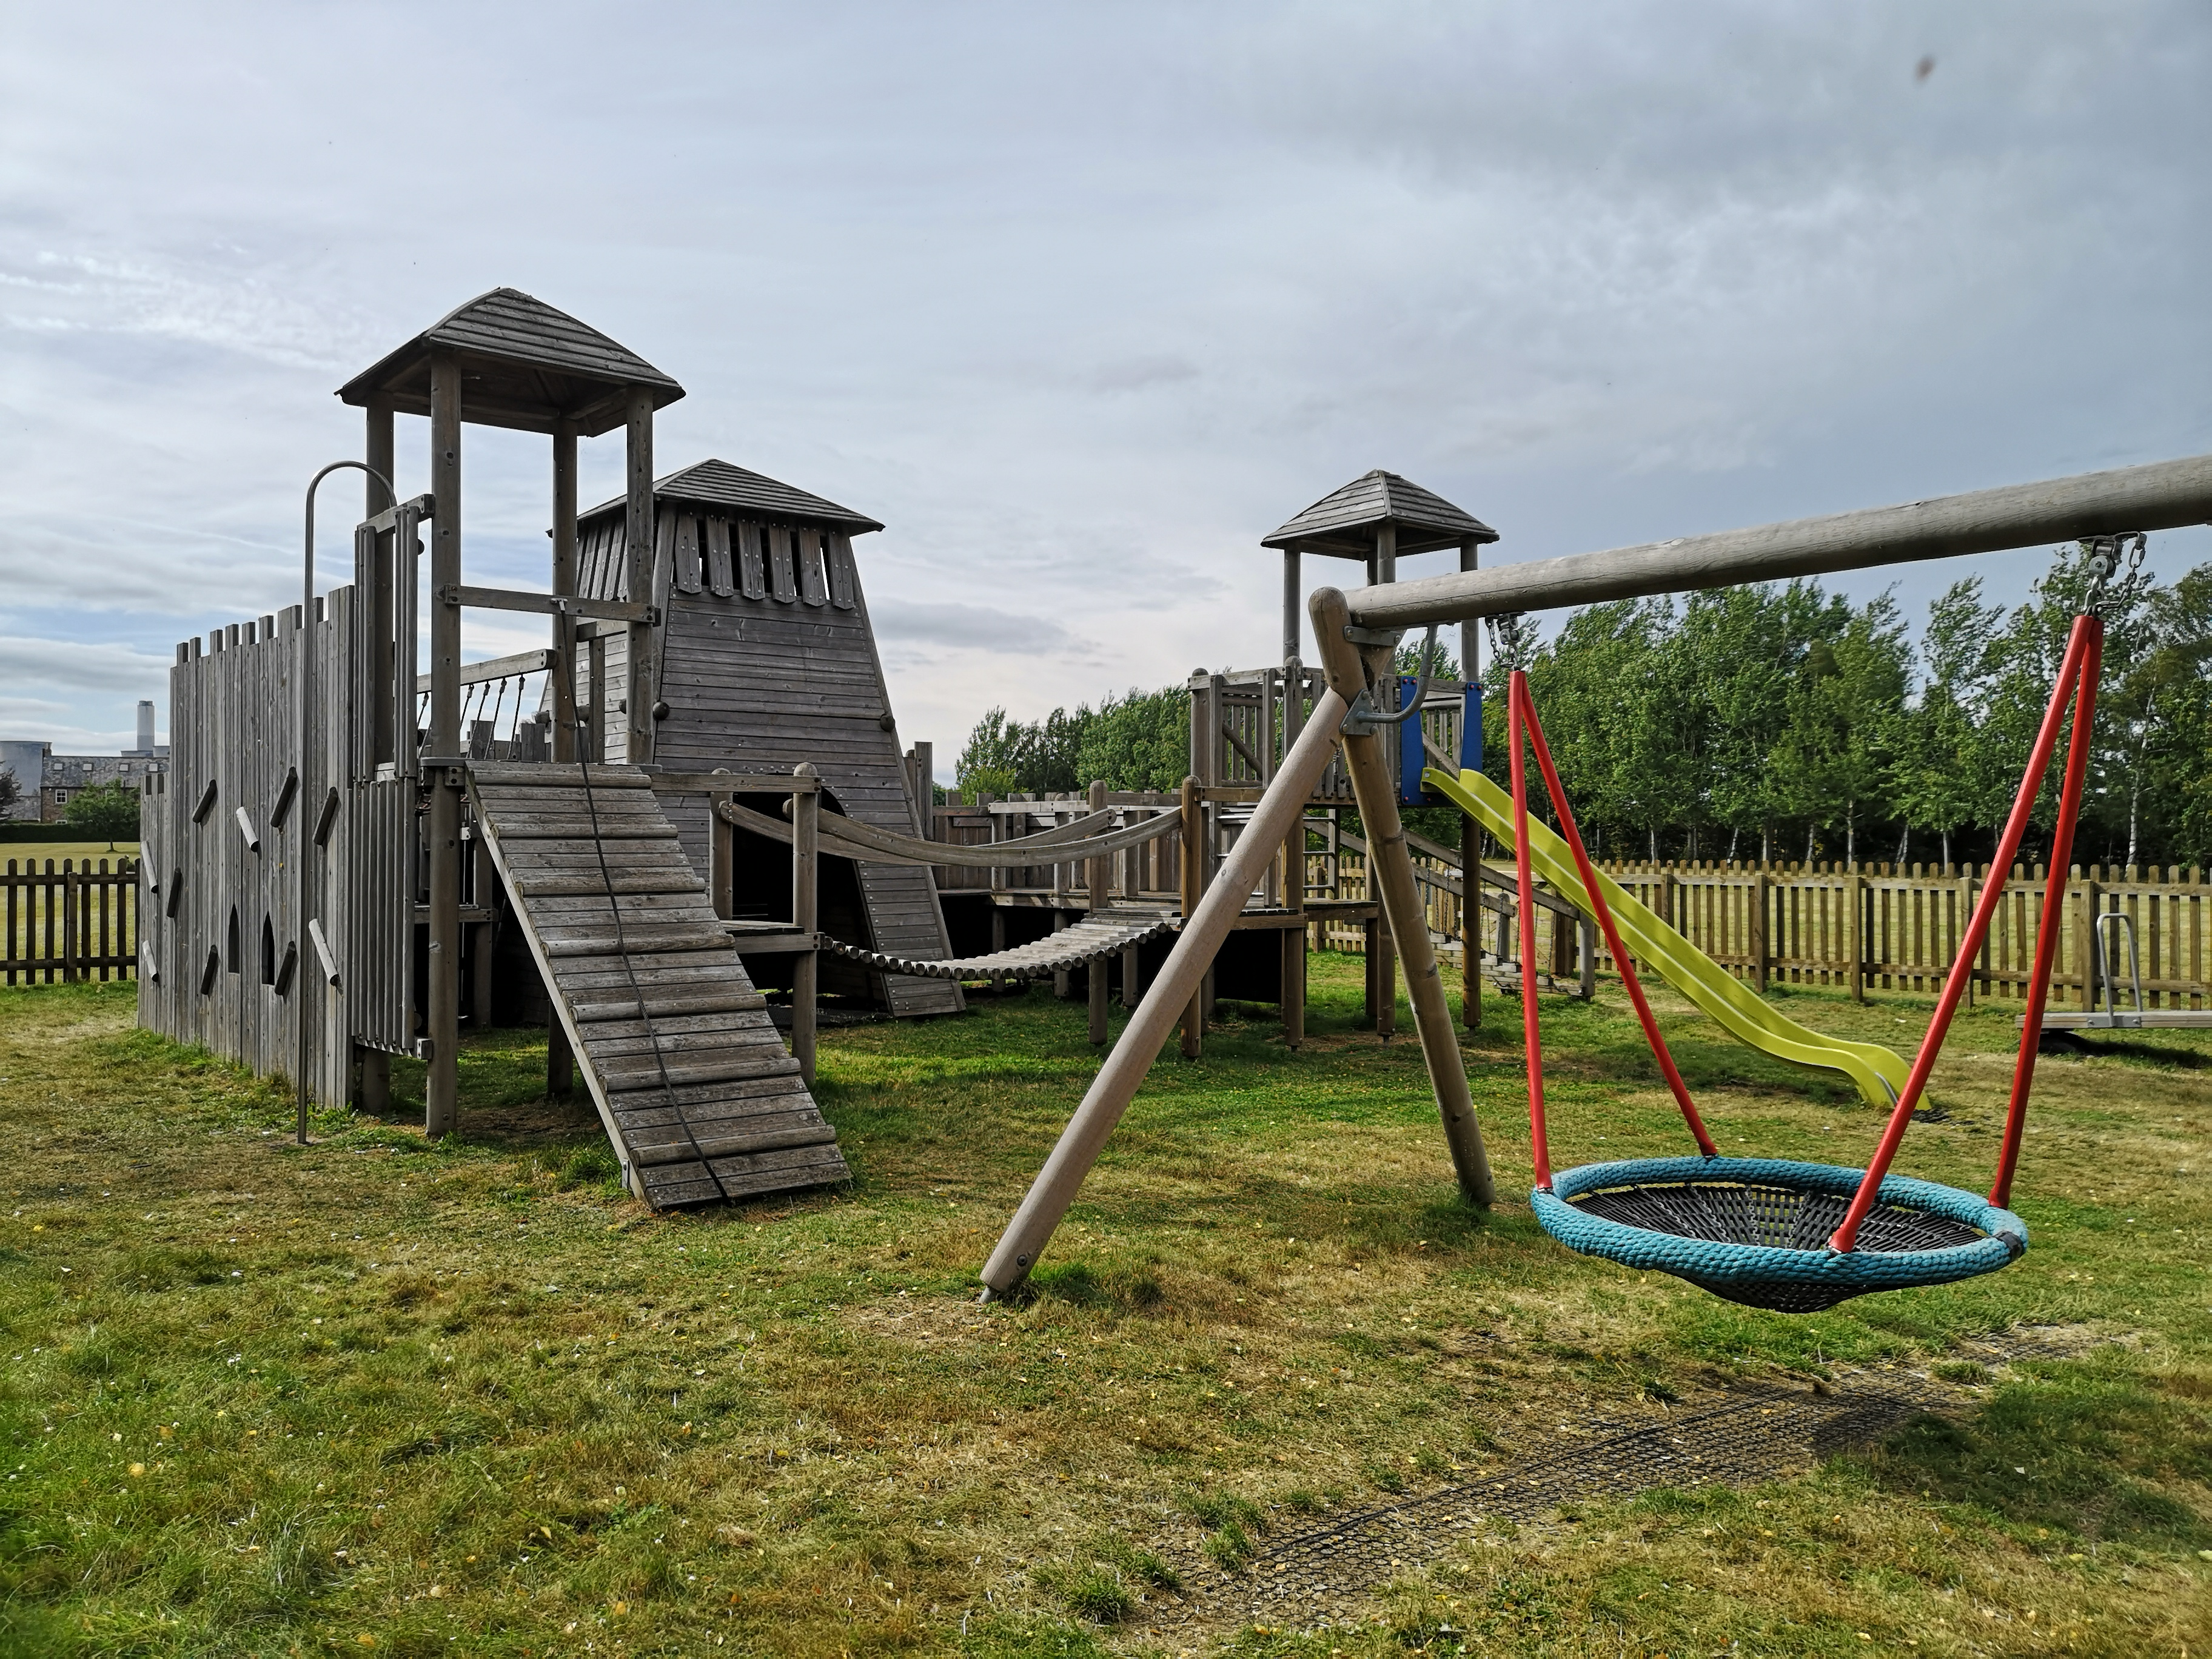 Torksey Fort Playground